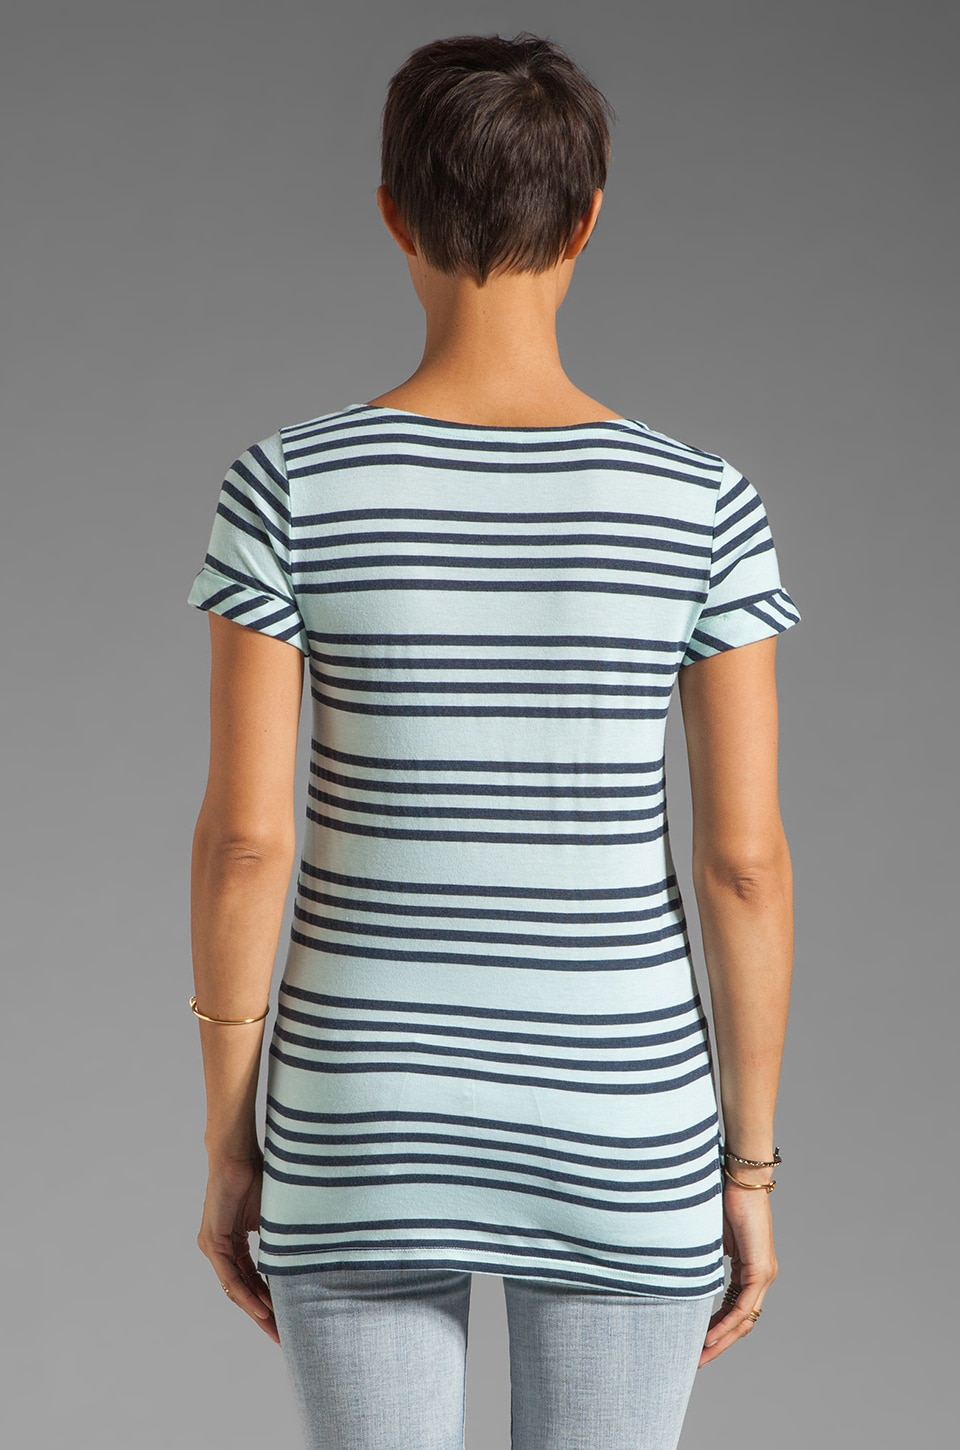 Splendid Capri Stripe Top in Julep